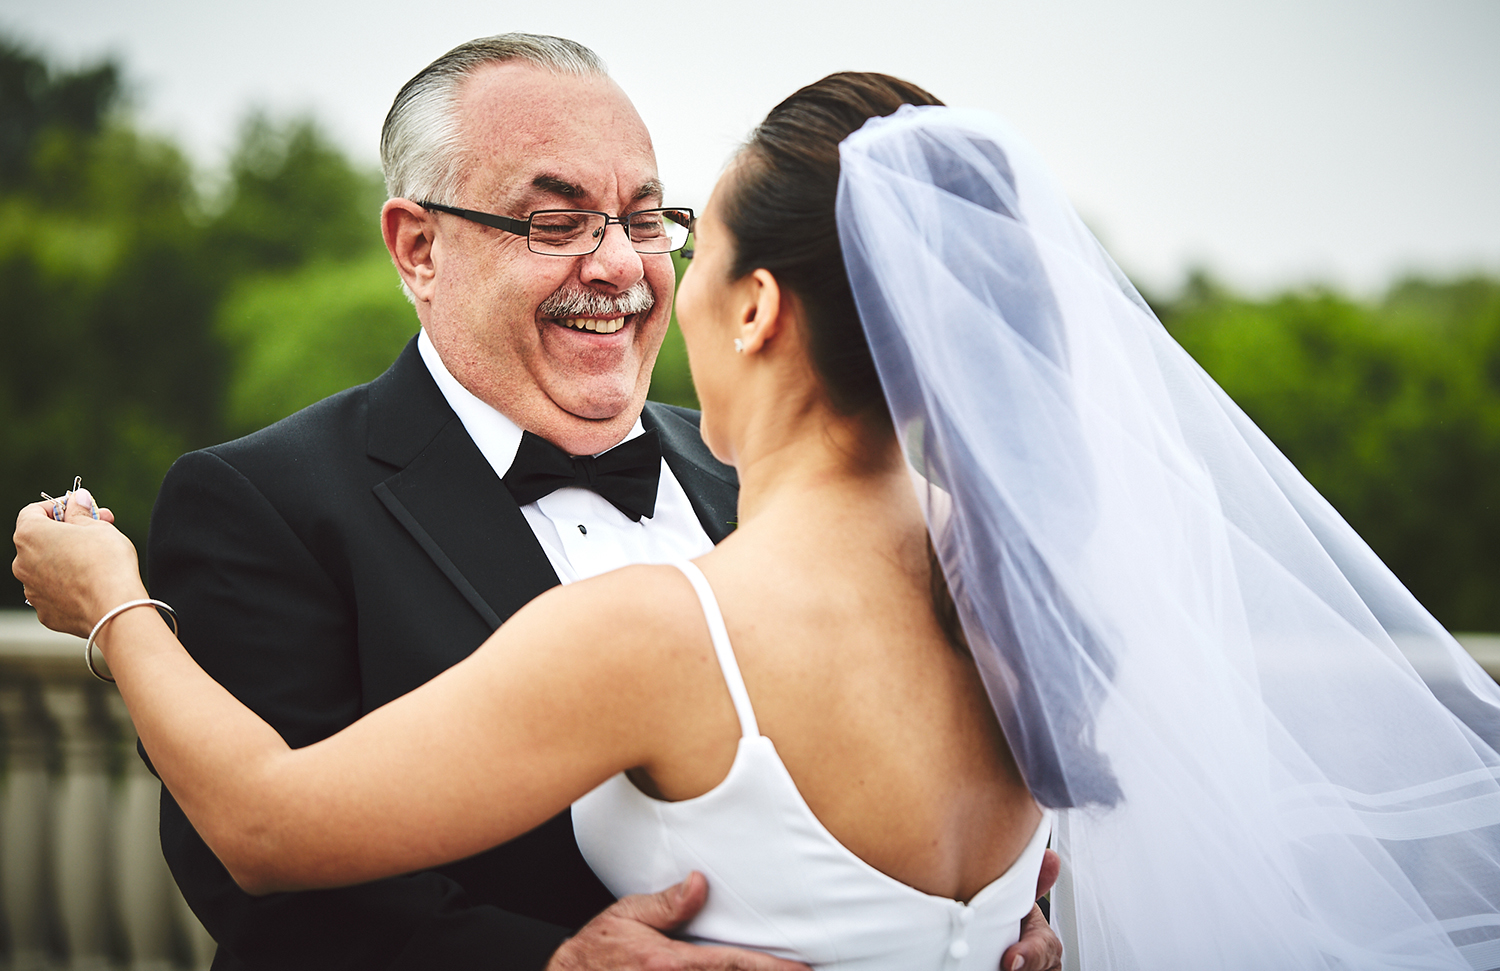 180519_PalaceatSomersetParkWeddingPhotography_NJWeddingPhotographer_By_BriJohnsonWeddings_0050.jpg